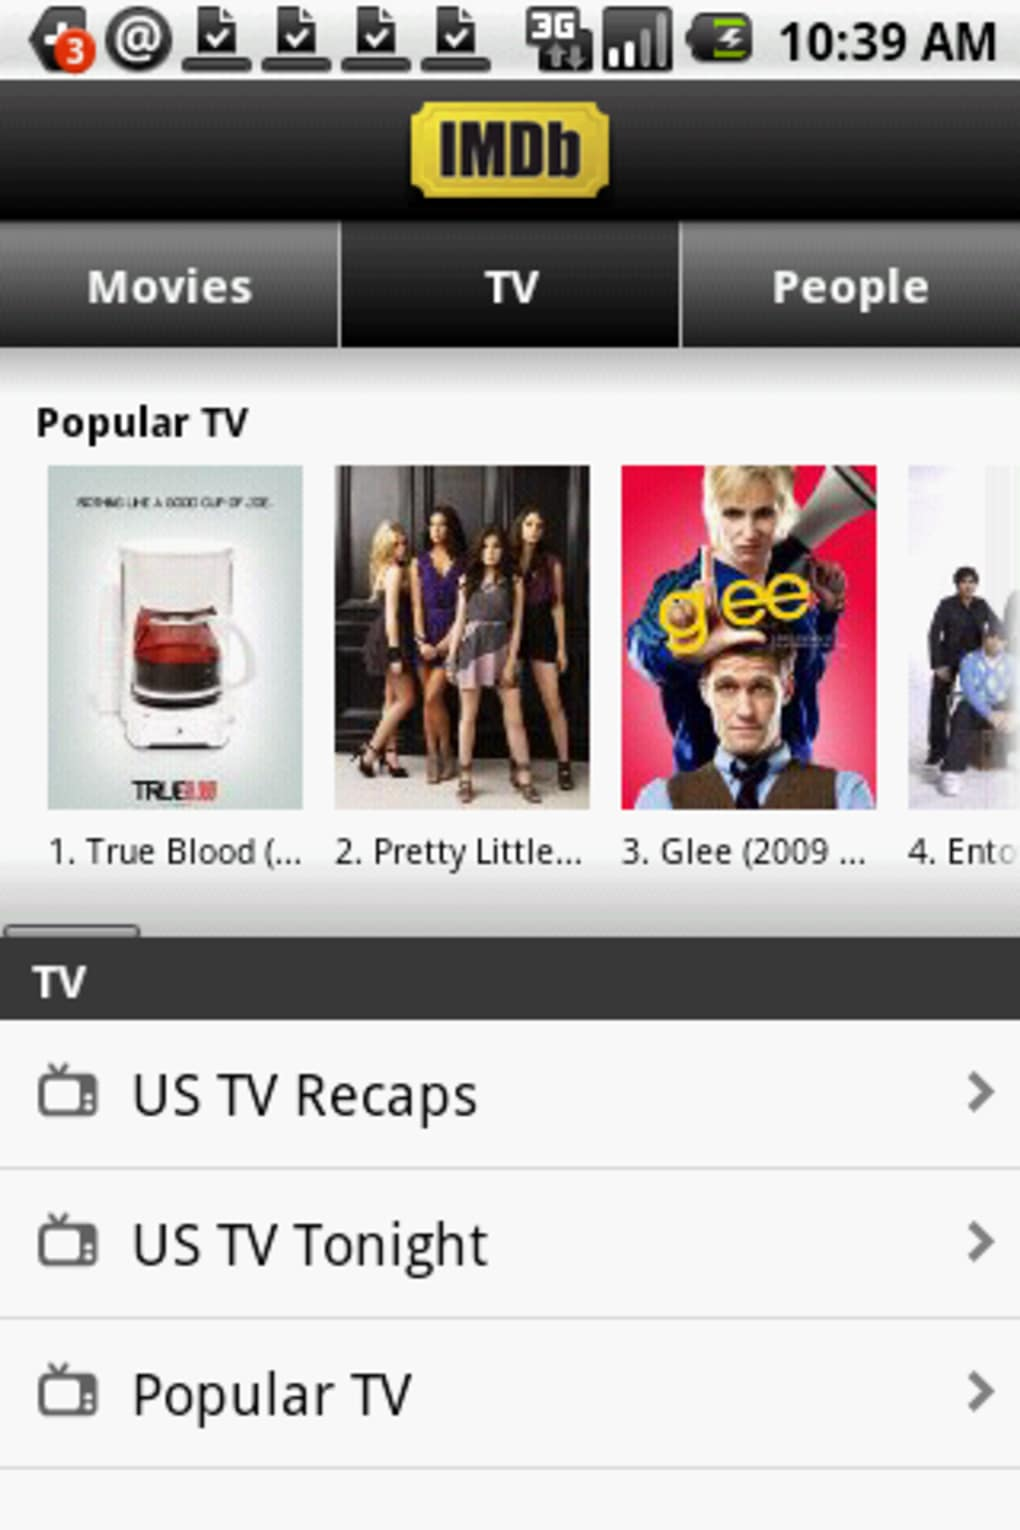 imdb apk for android 4.0.4